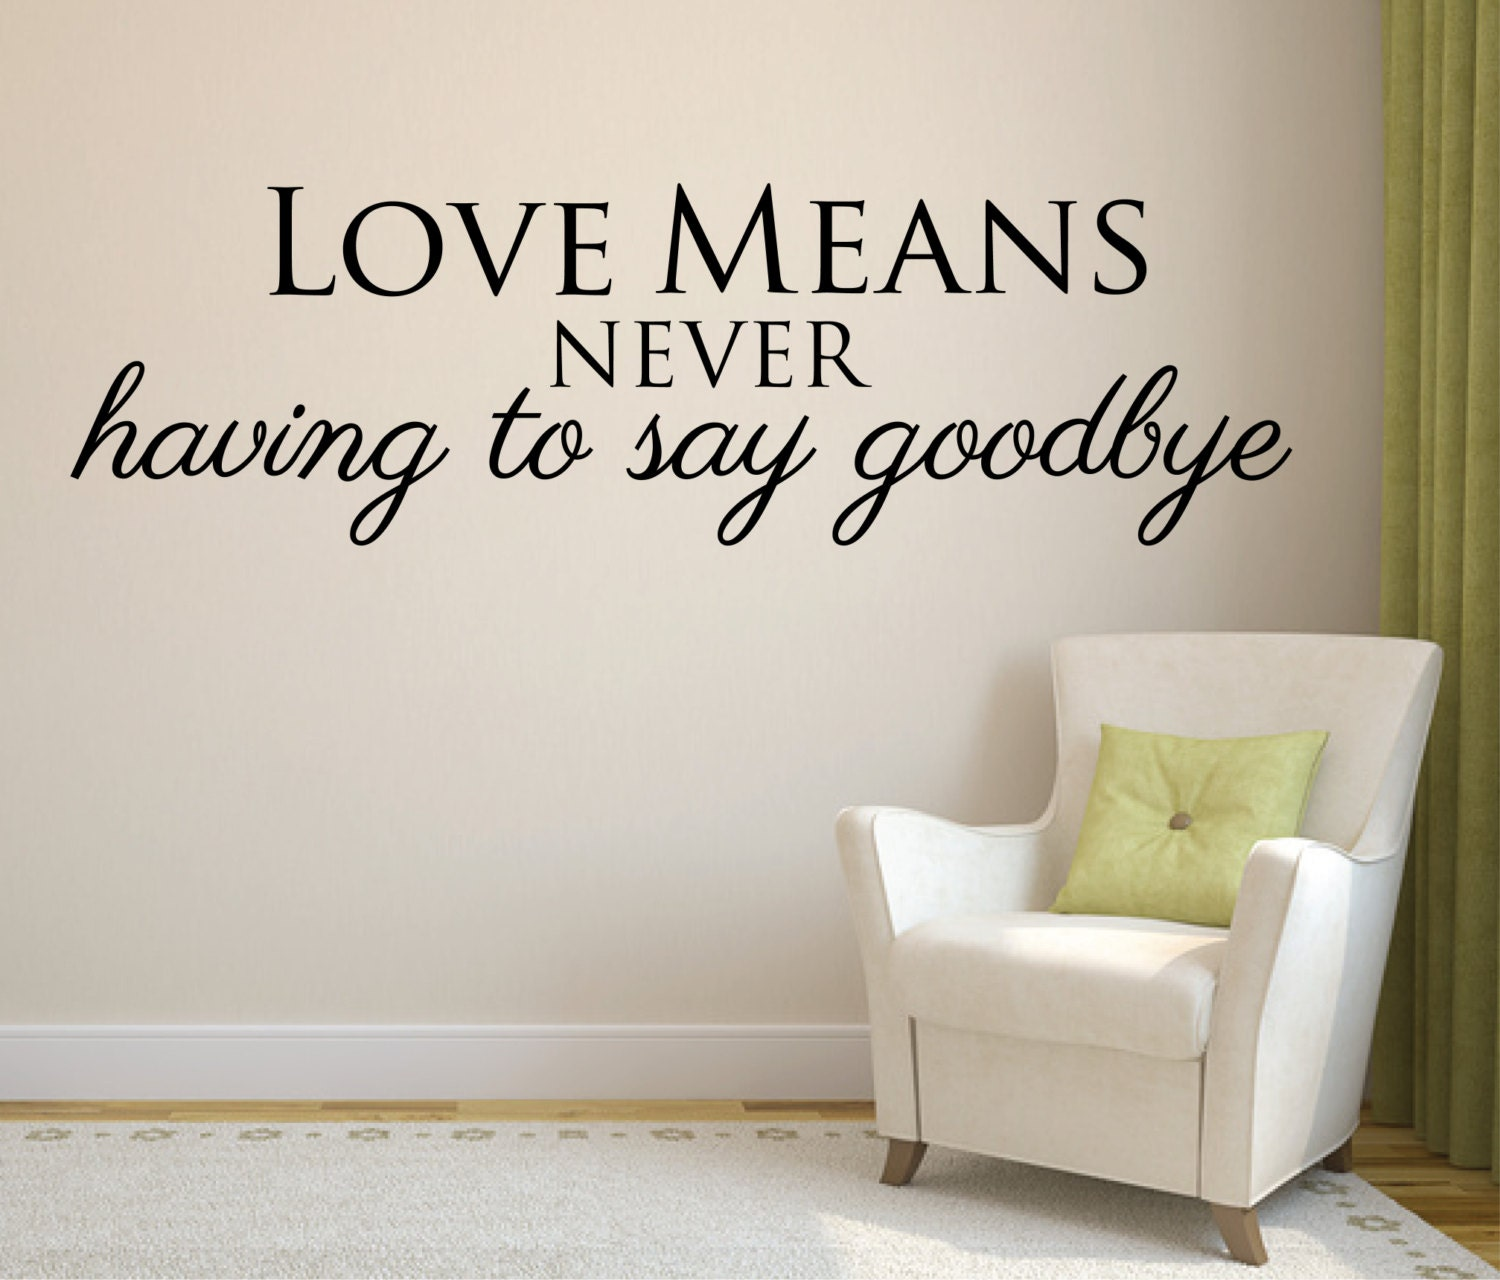 Wall Decals Quotes: Wall Decal Love Quote Love Means Never Having To Say Goodbye